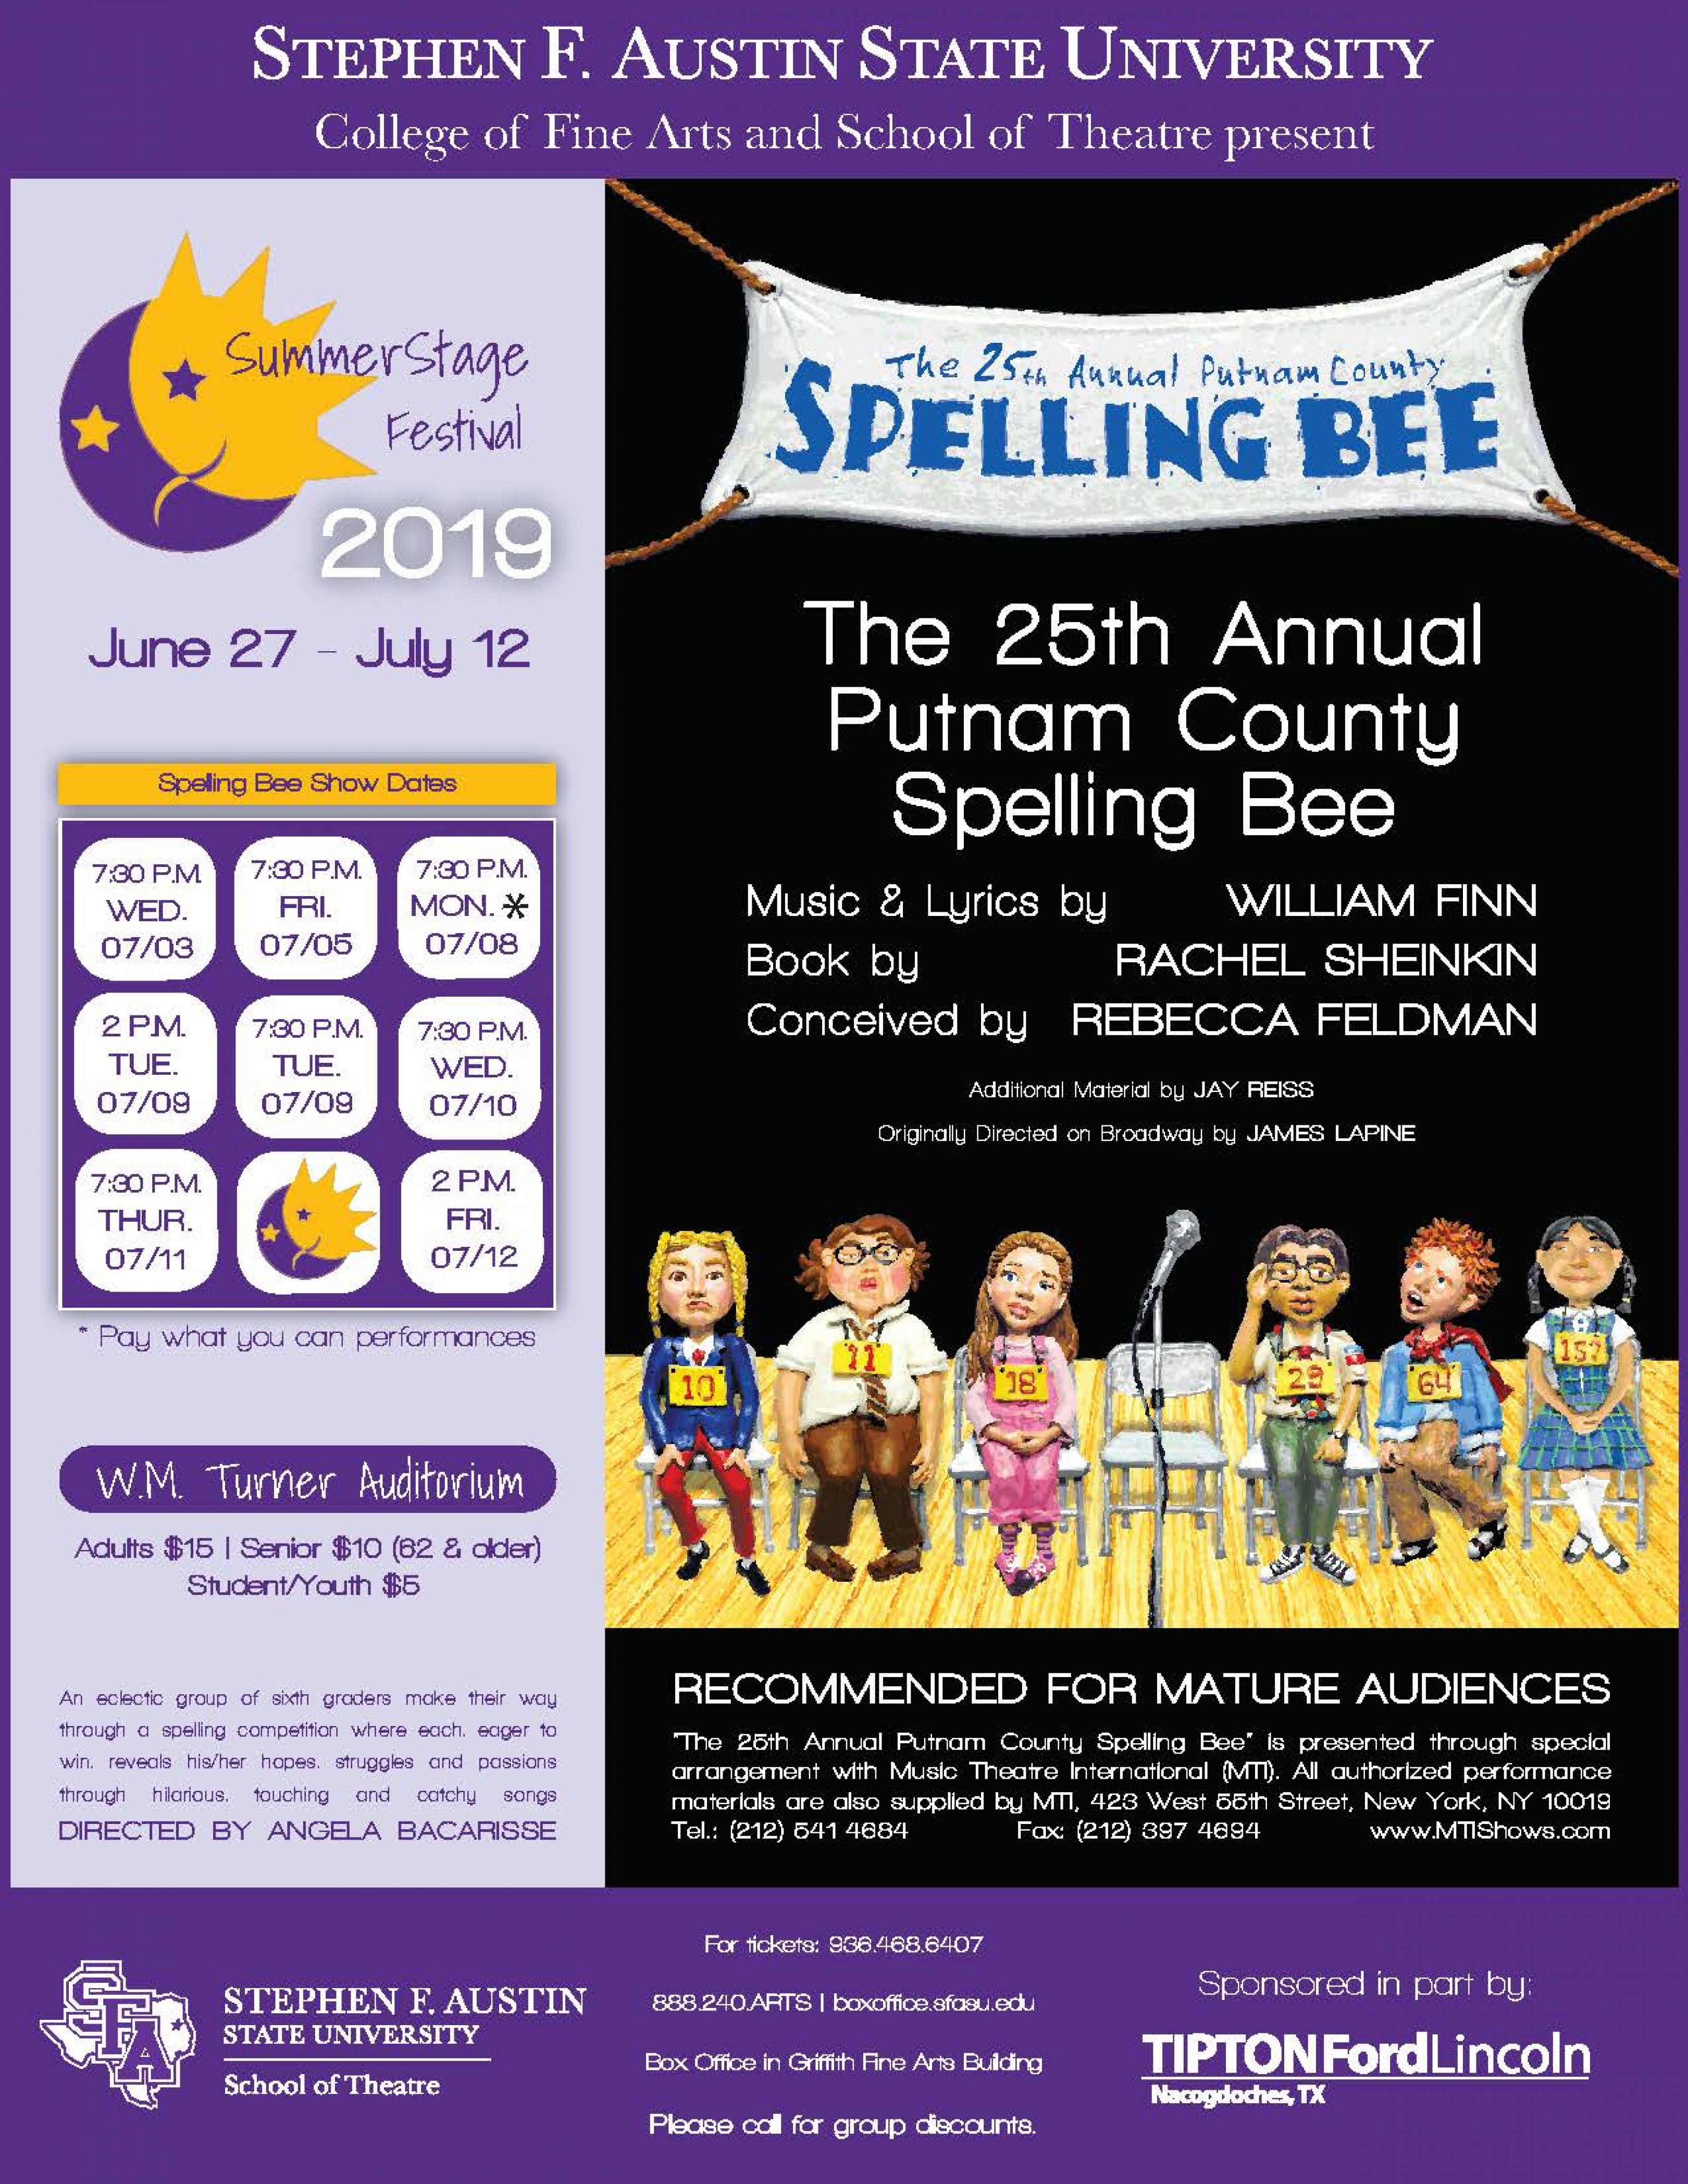 The 25th Annual Putnam County Spelling Bee banner image